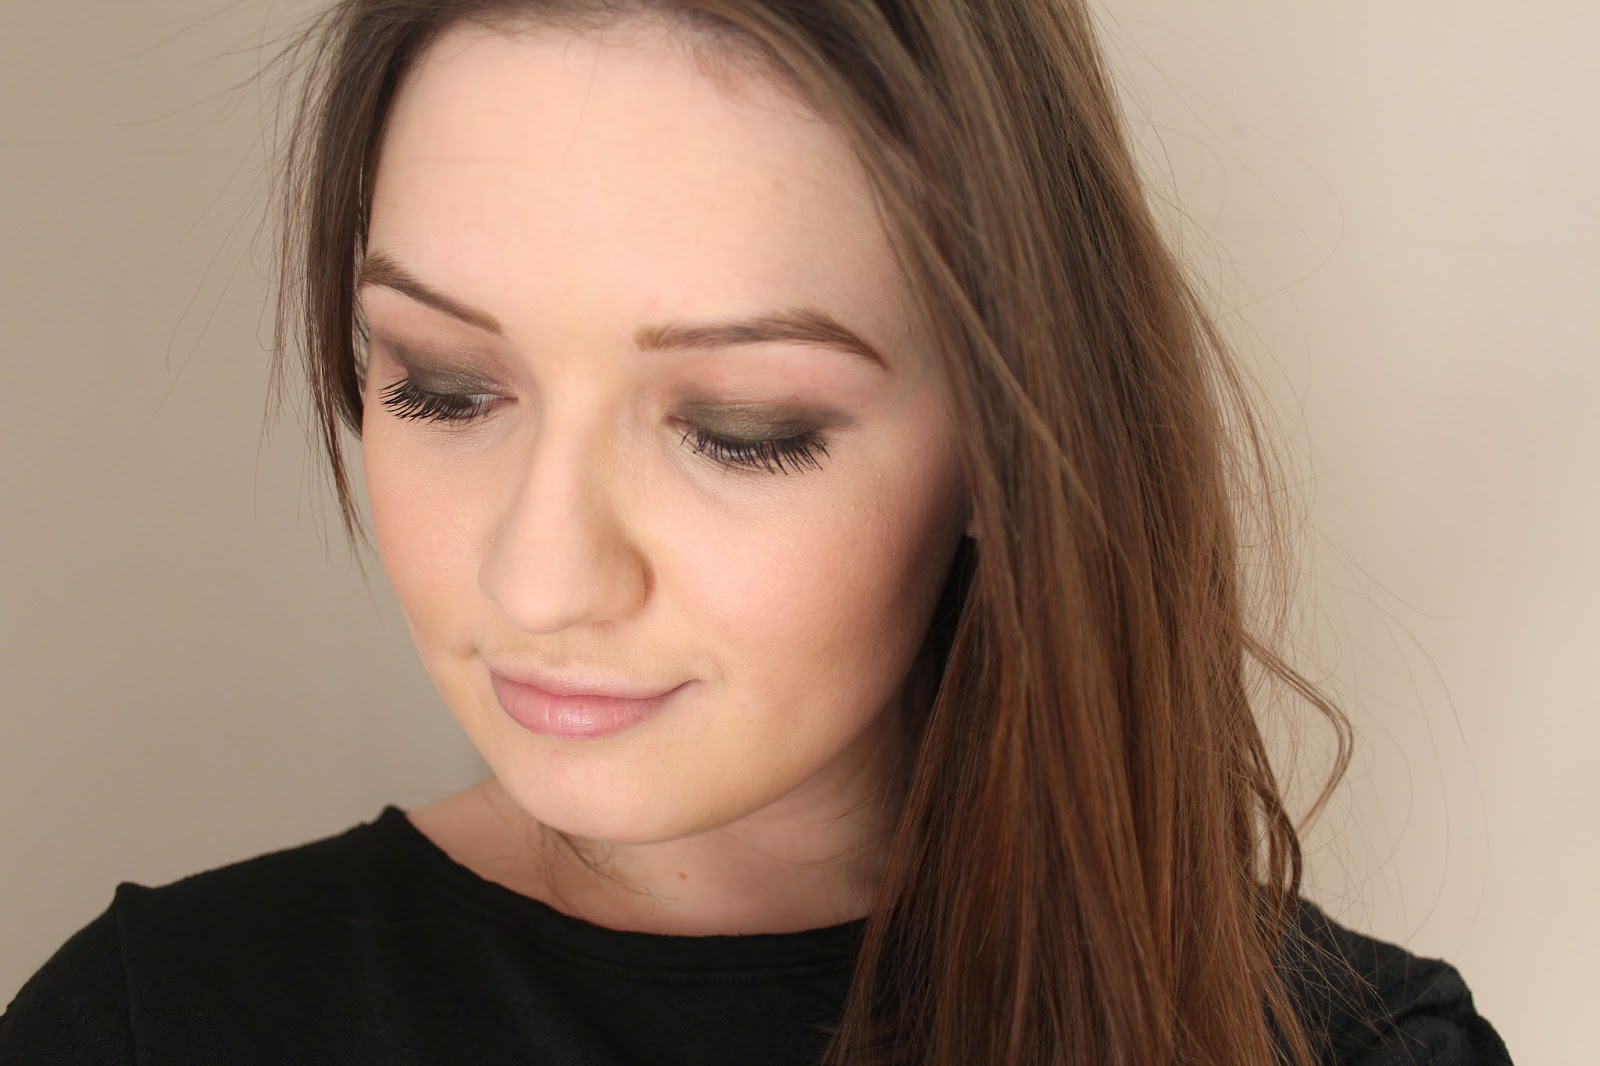 burberry beauty box covent garden eye silk shadow khaki green wet dry swatch tutorial wendy rowe aw15 ss15 eyes beauty blogger bblogger bbloggers instagram jourdan dunn naomi campbell campaign smokey blog